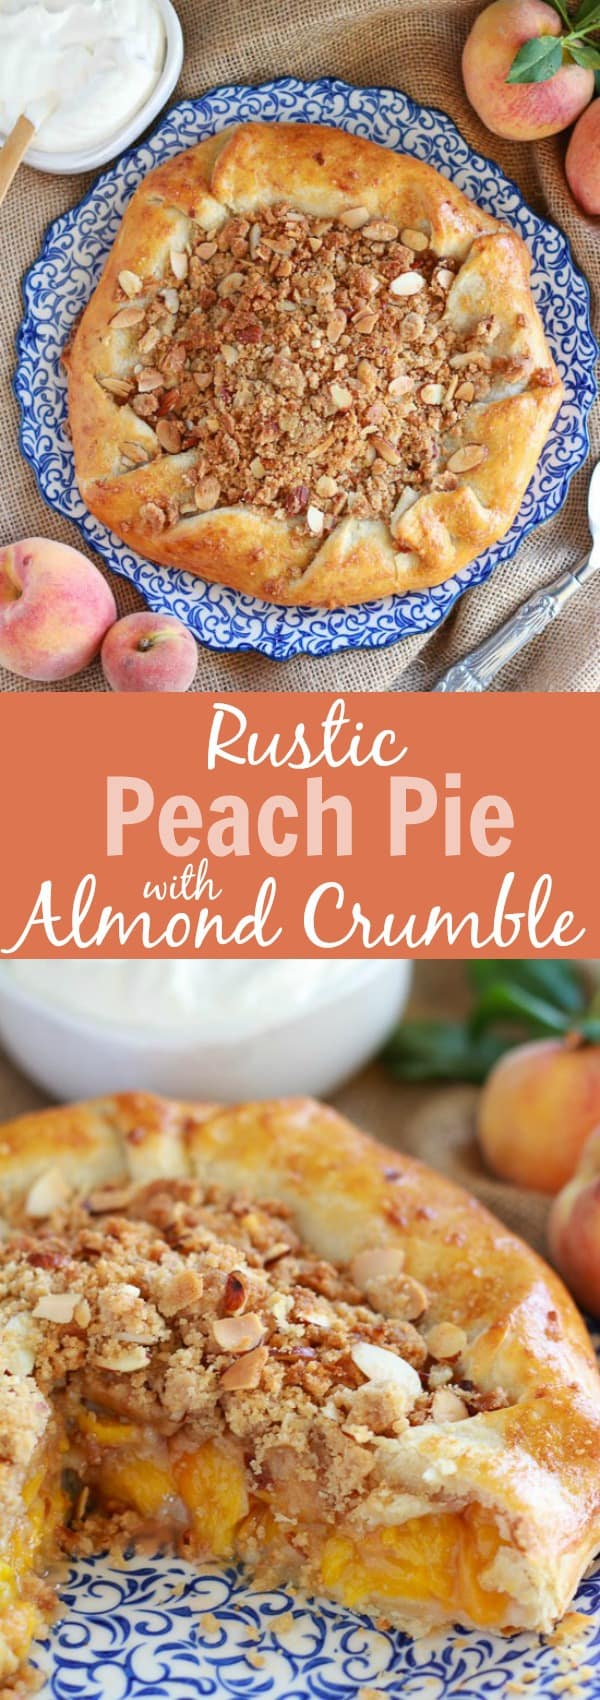 Rustic Peach Pie with Almond Crumble | Celebrating Sweets